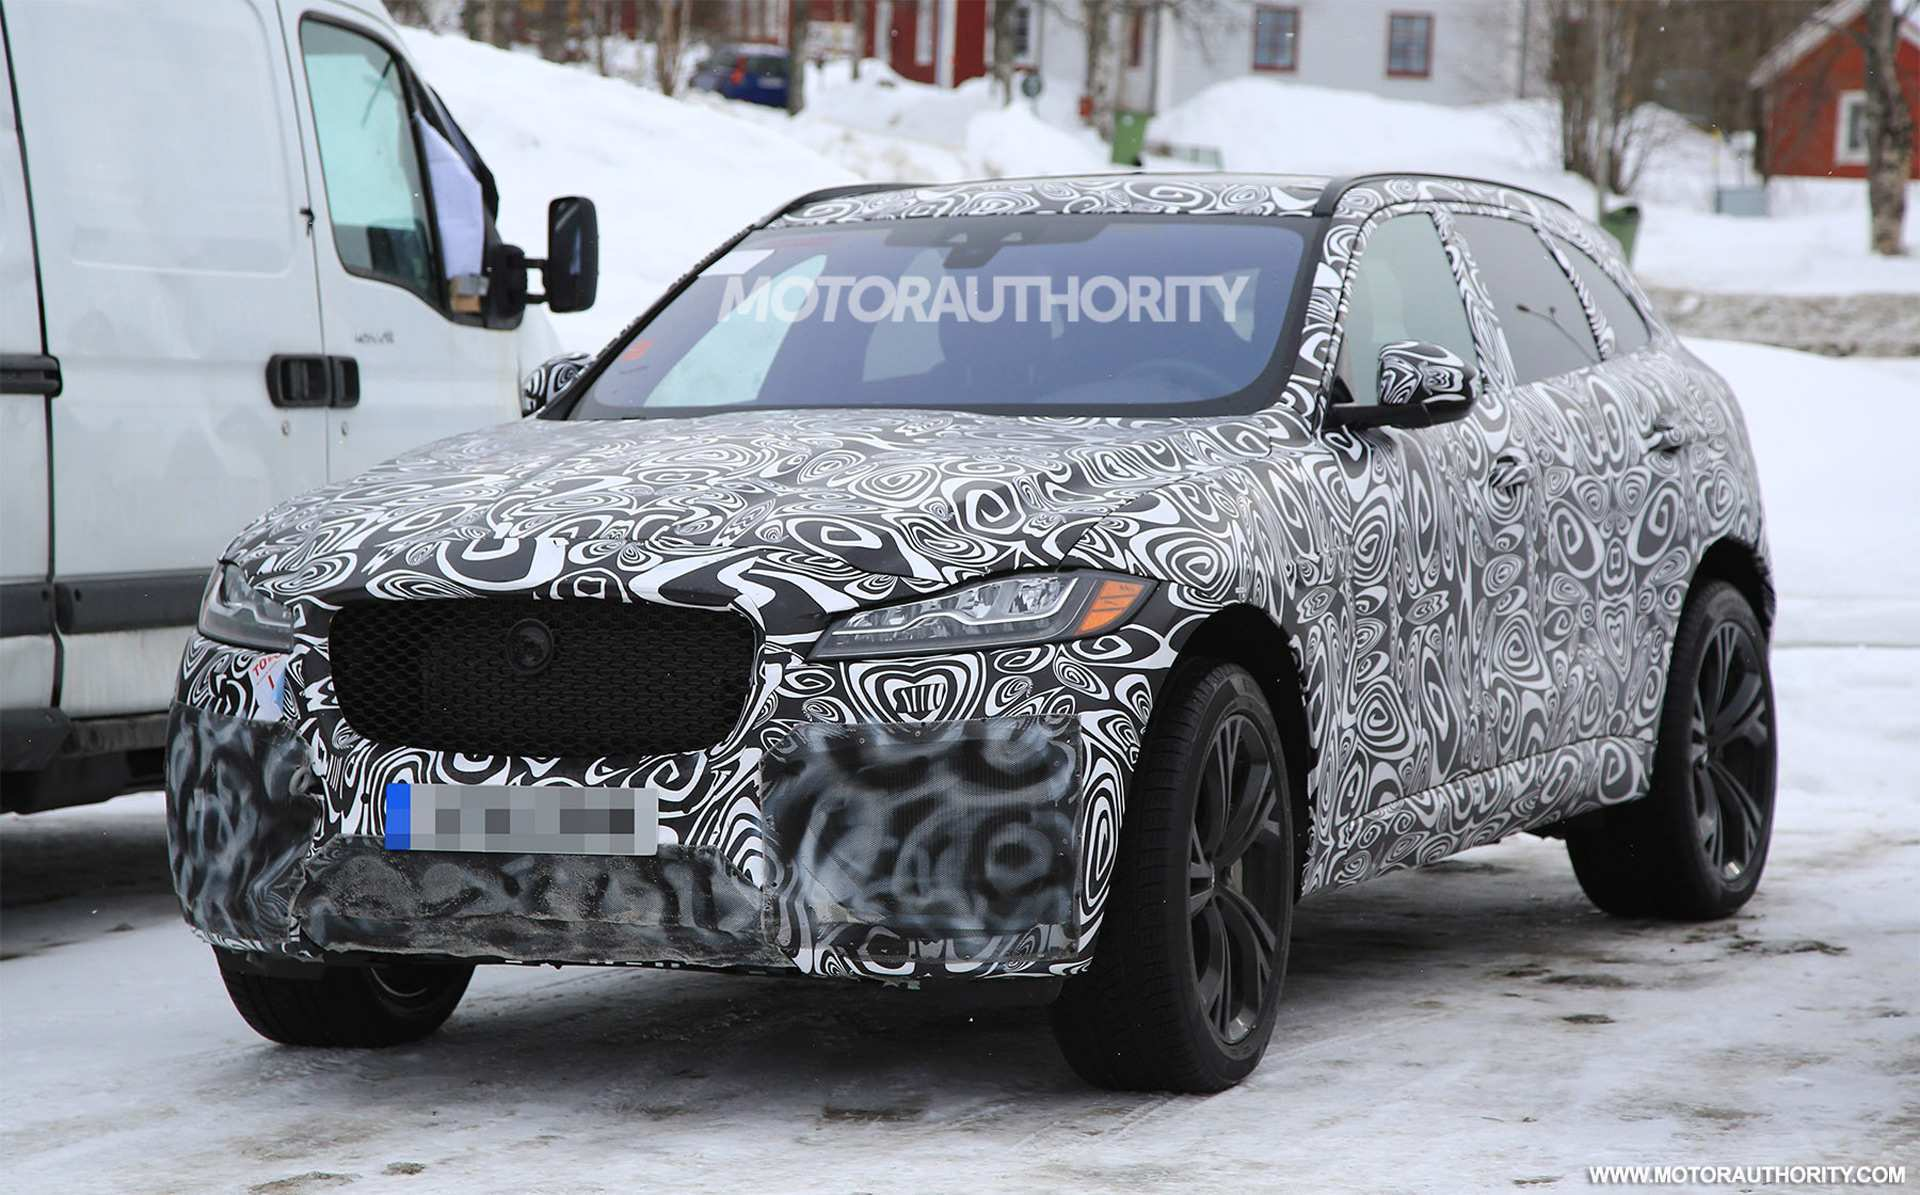 97 New 2020 Jaguar F Pace Svr Exterior Ratings with 2020 Jaguar F Pace Svr Exterior